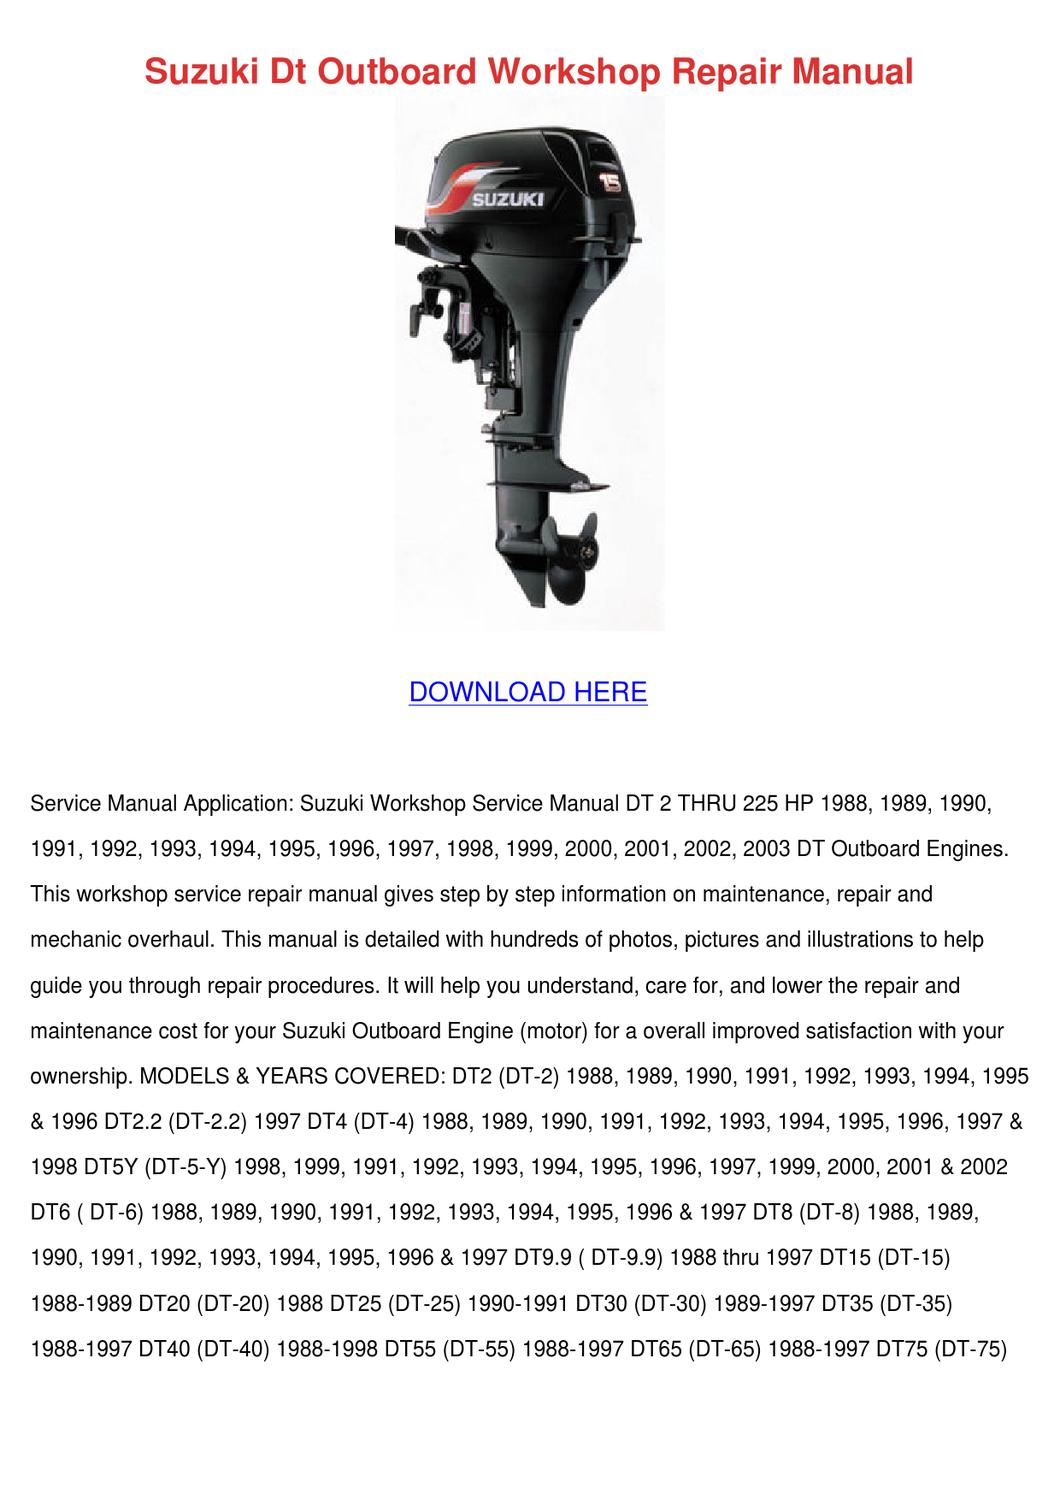 Suzuki Dt Outboard Workshop Repair Manual By Cecil Goral Issuu King Quad 750 Fuel Filter